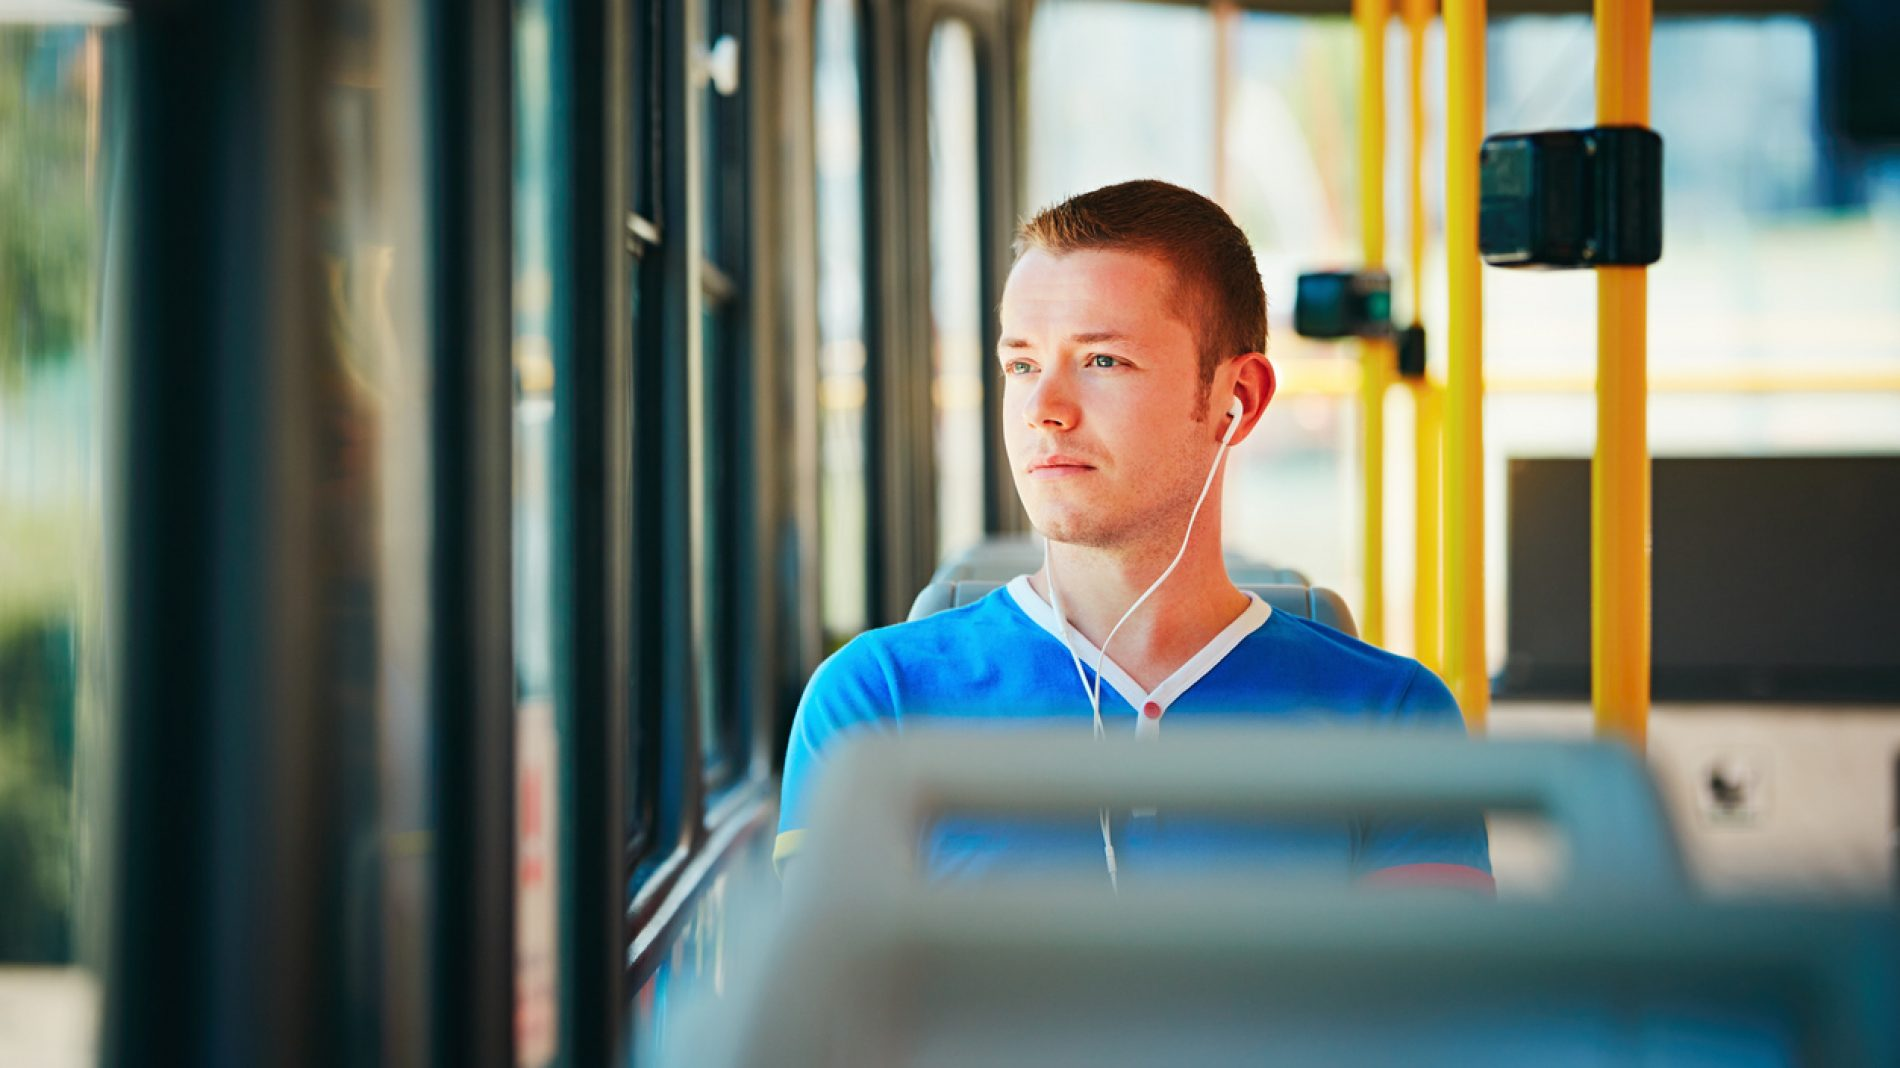 Young man listening to music on a bus